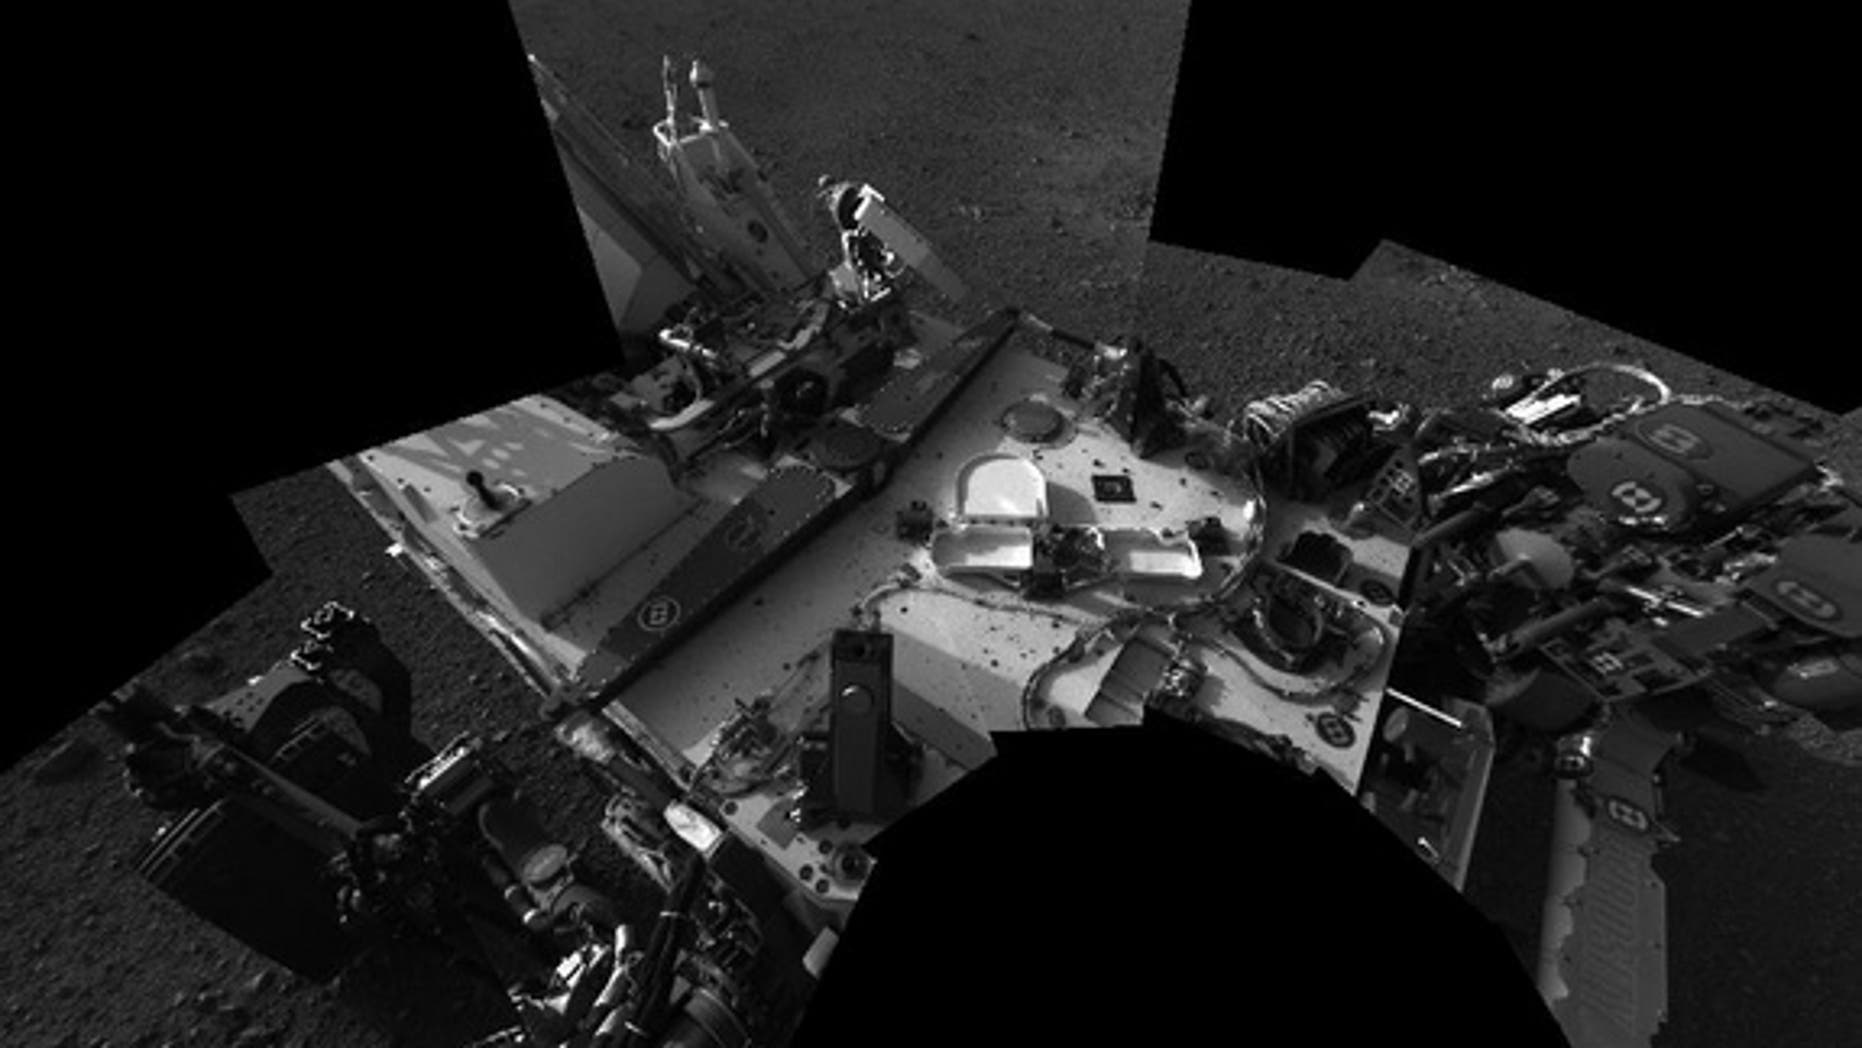 This view of Mars, taken by NASA's Curiosity rover on Sol 3 (Aug. 8-9, 2012), shows an early view of the rover's deck as viewed from mast cameras.